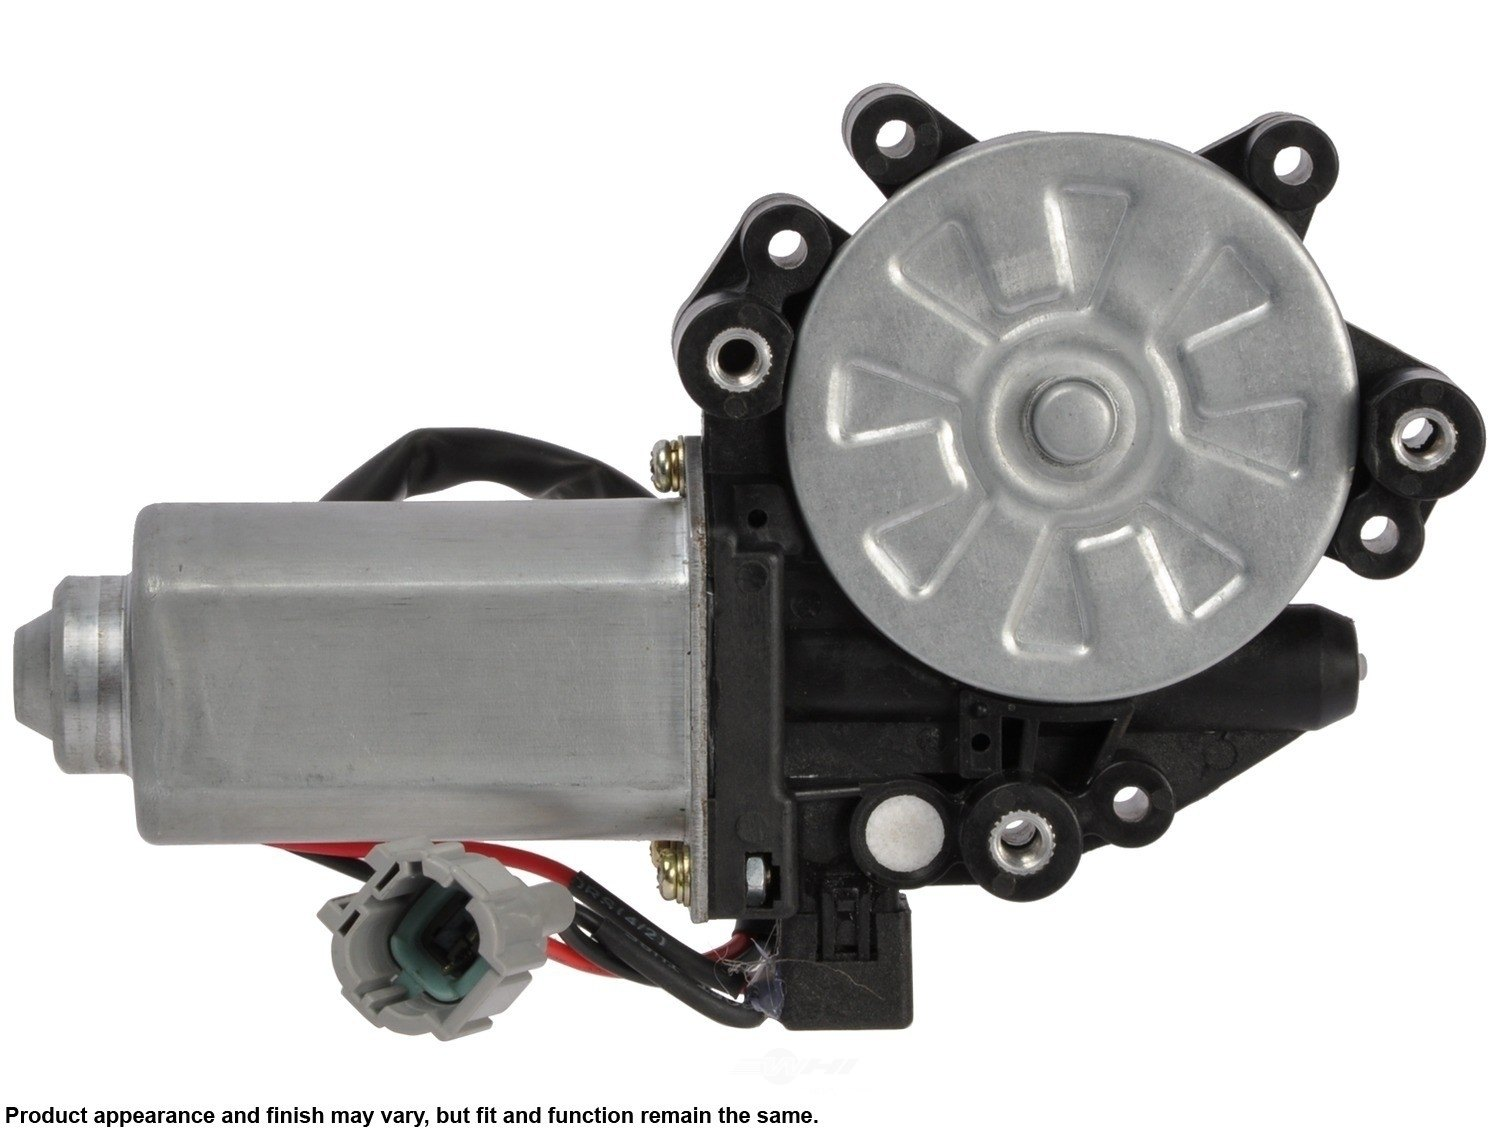 New Cardone Select Window Lift Motor Fits 2004 2011 Nissan